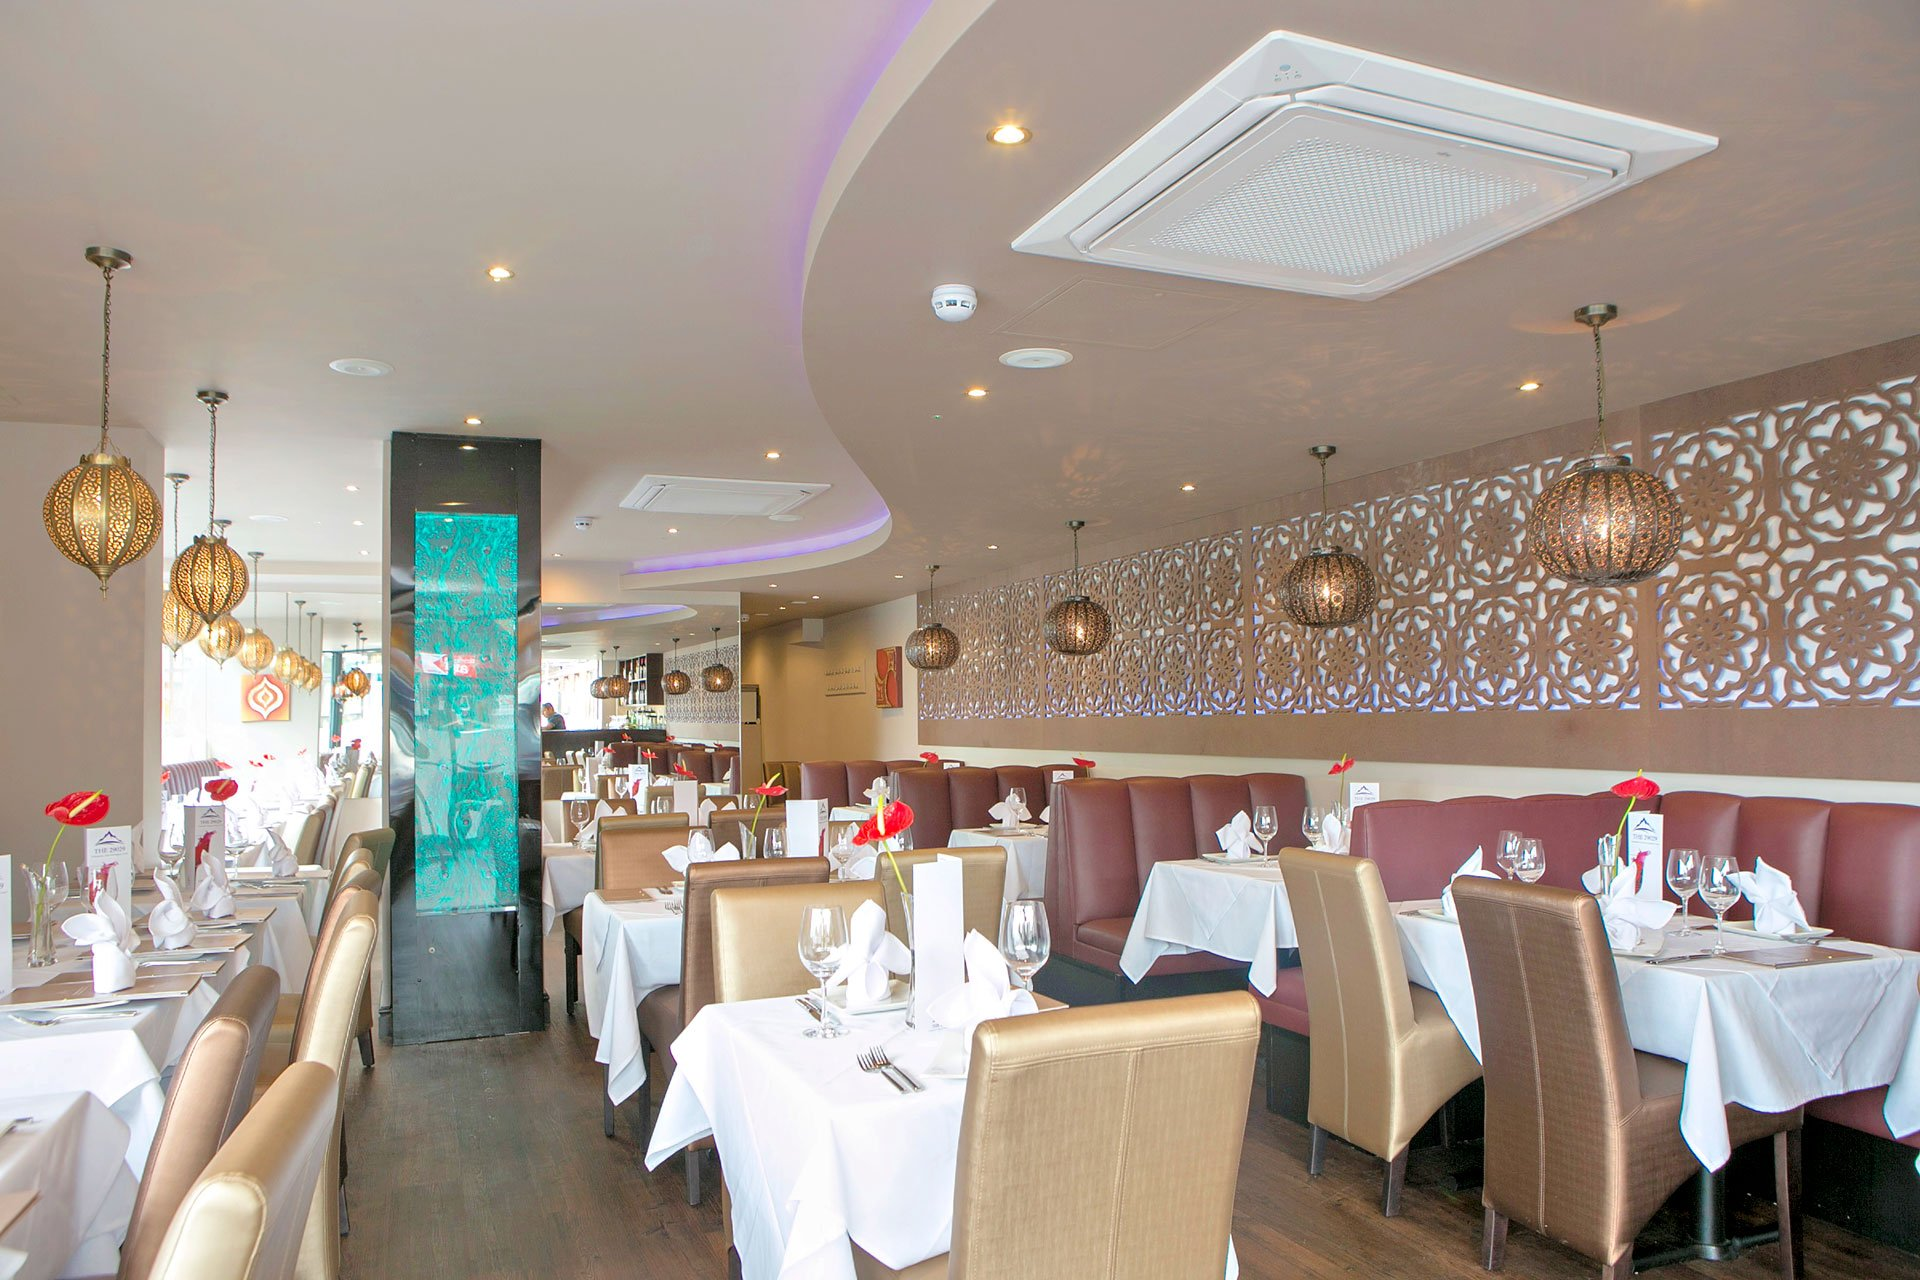 Interior Image - The 29029 Restaurant Broadstone